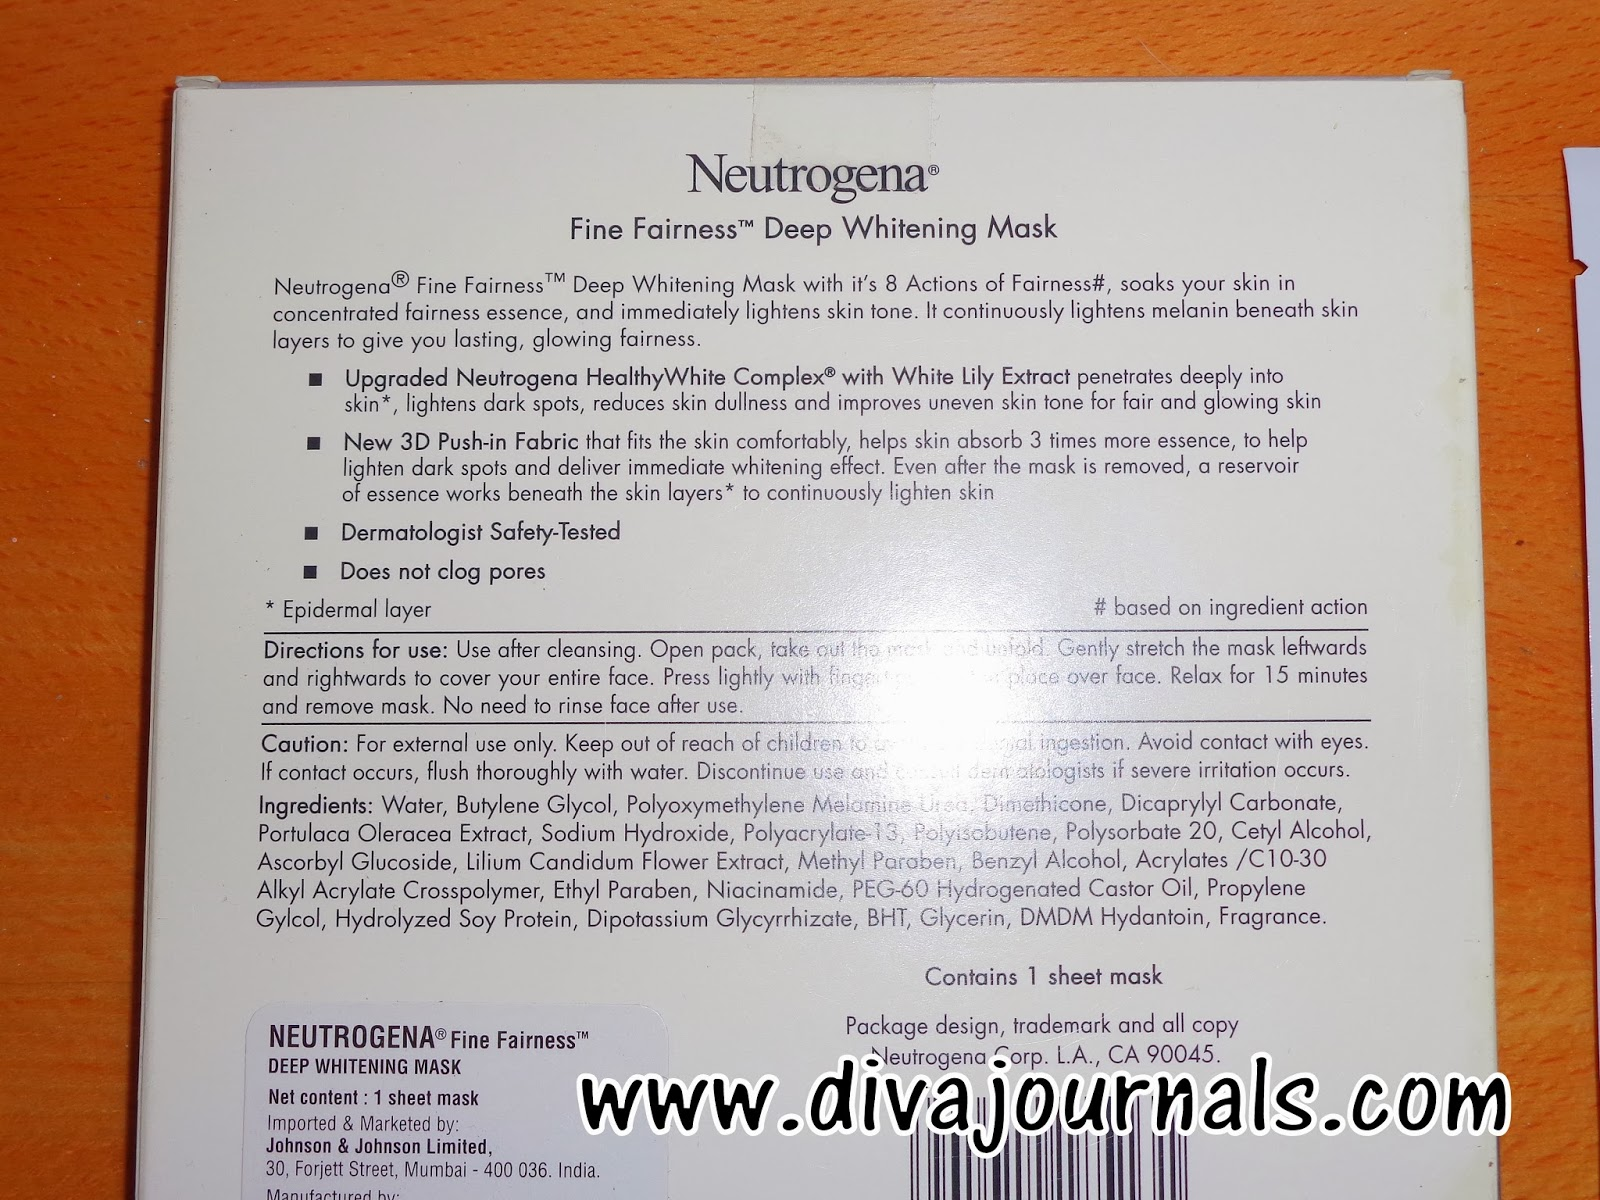 Neutrogena Fine Fairness Deep Whitening Mask Review